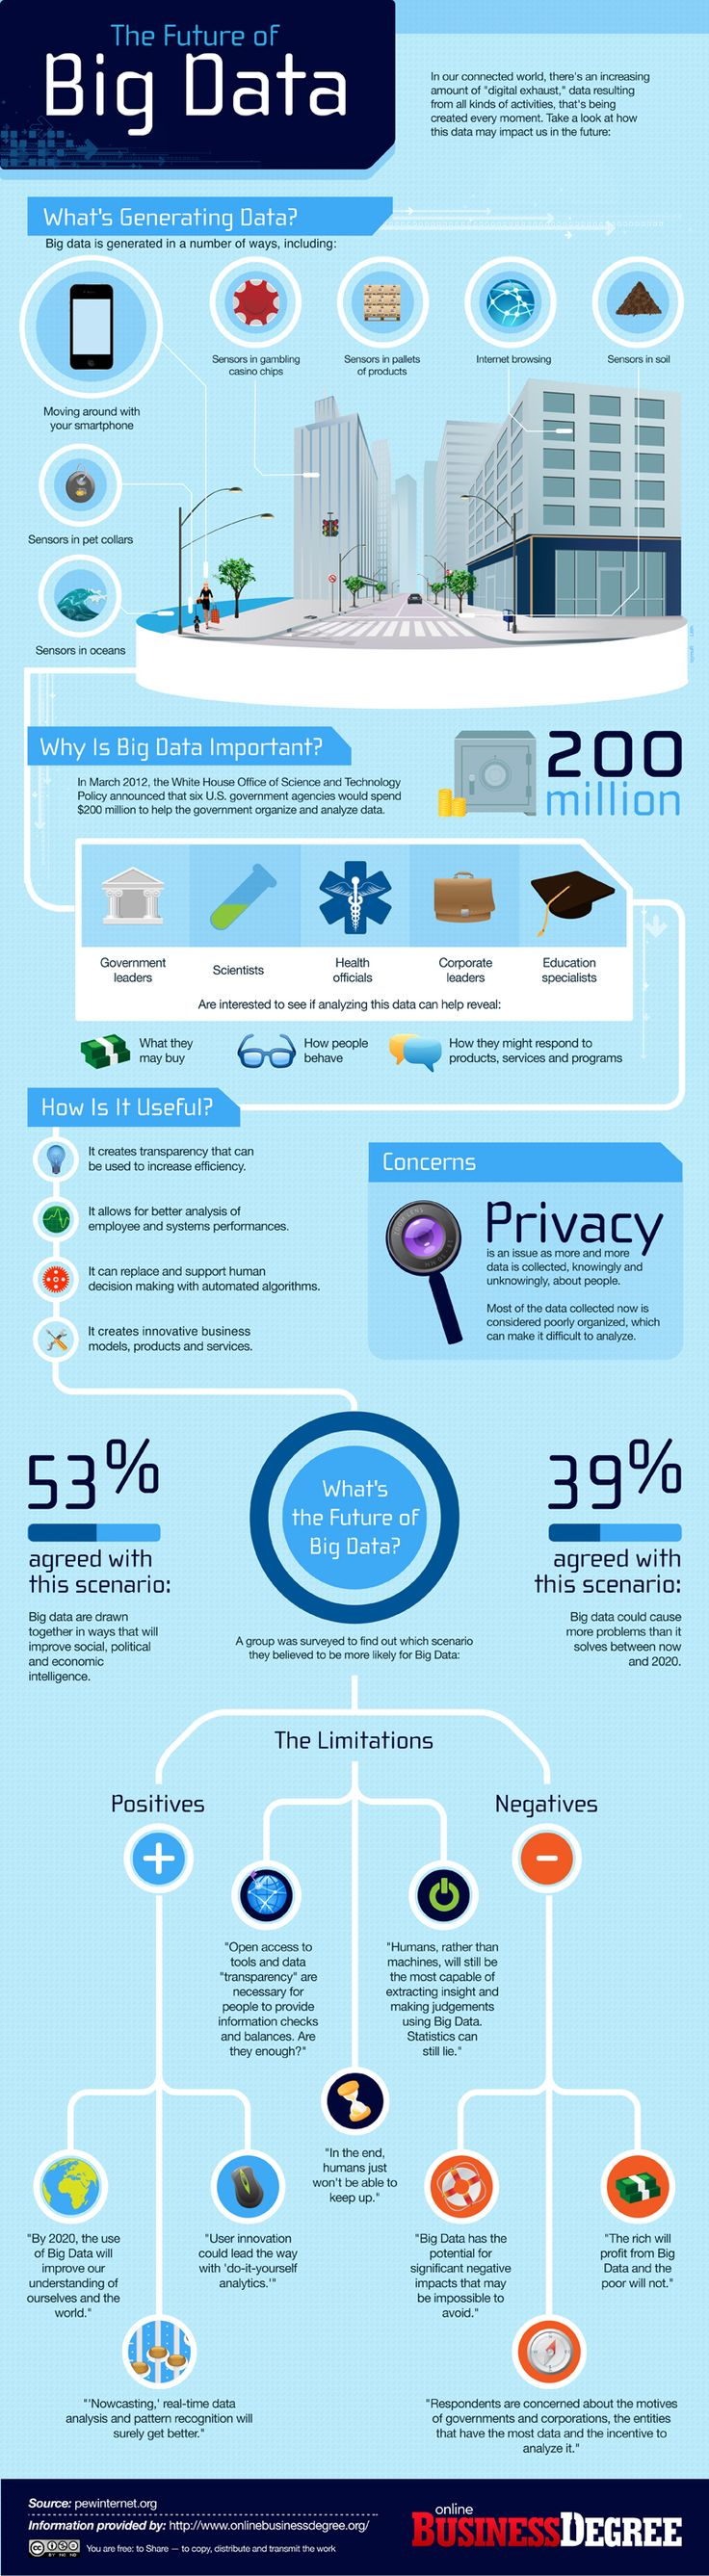 The future of big data [infographic]